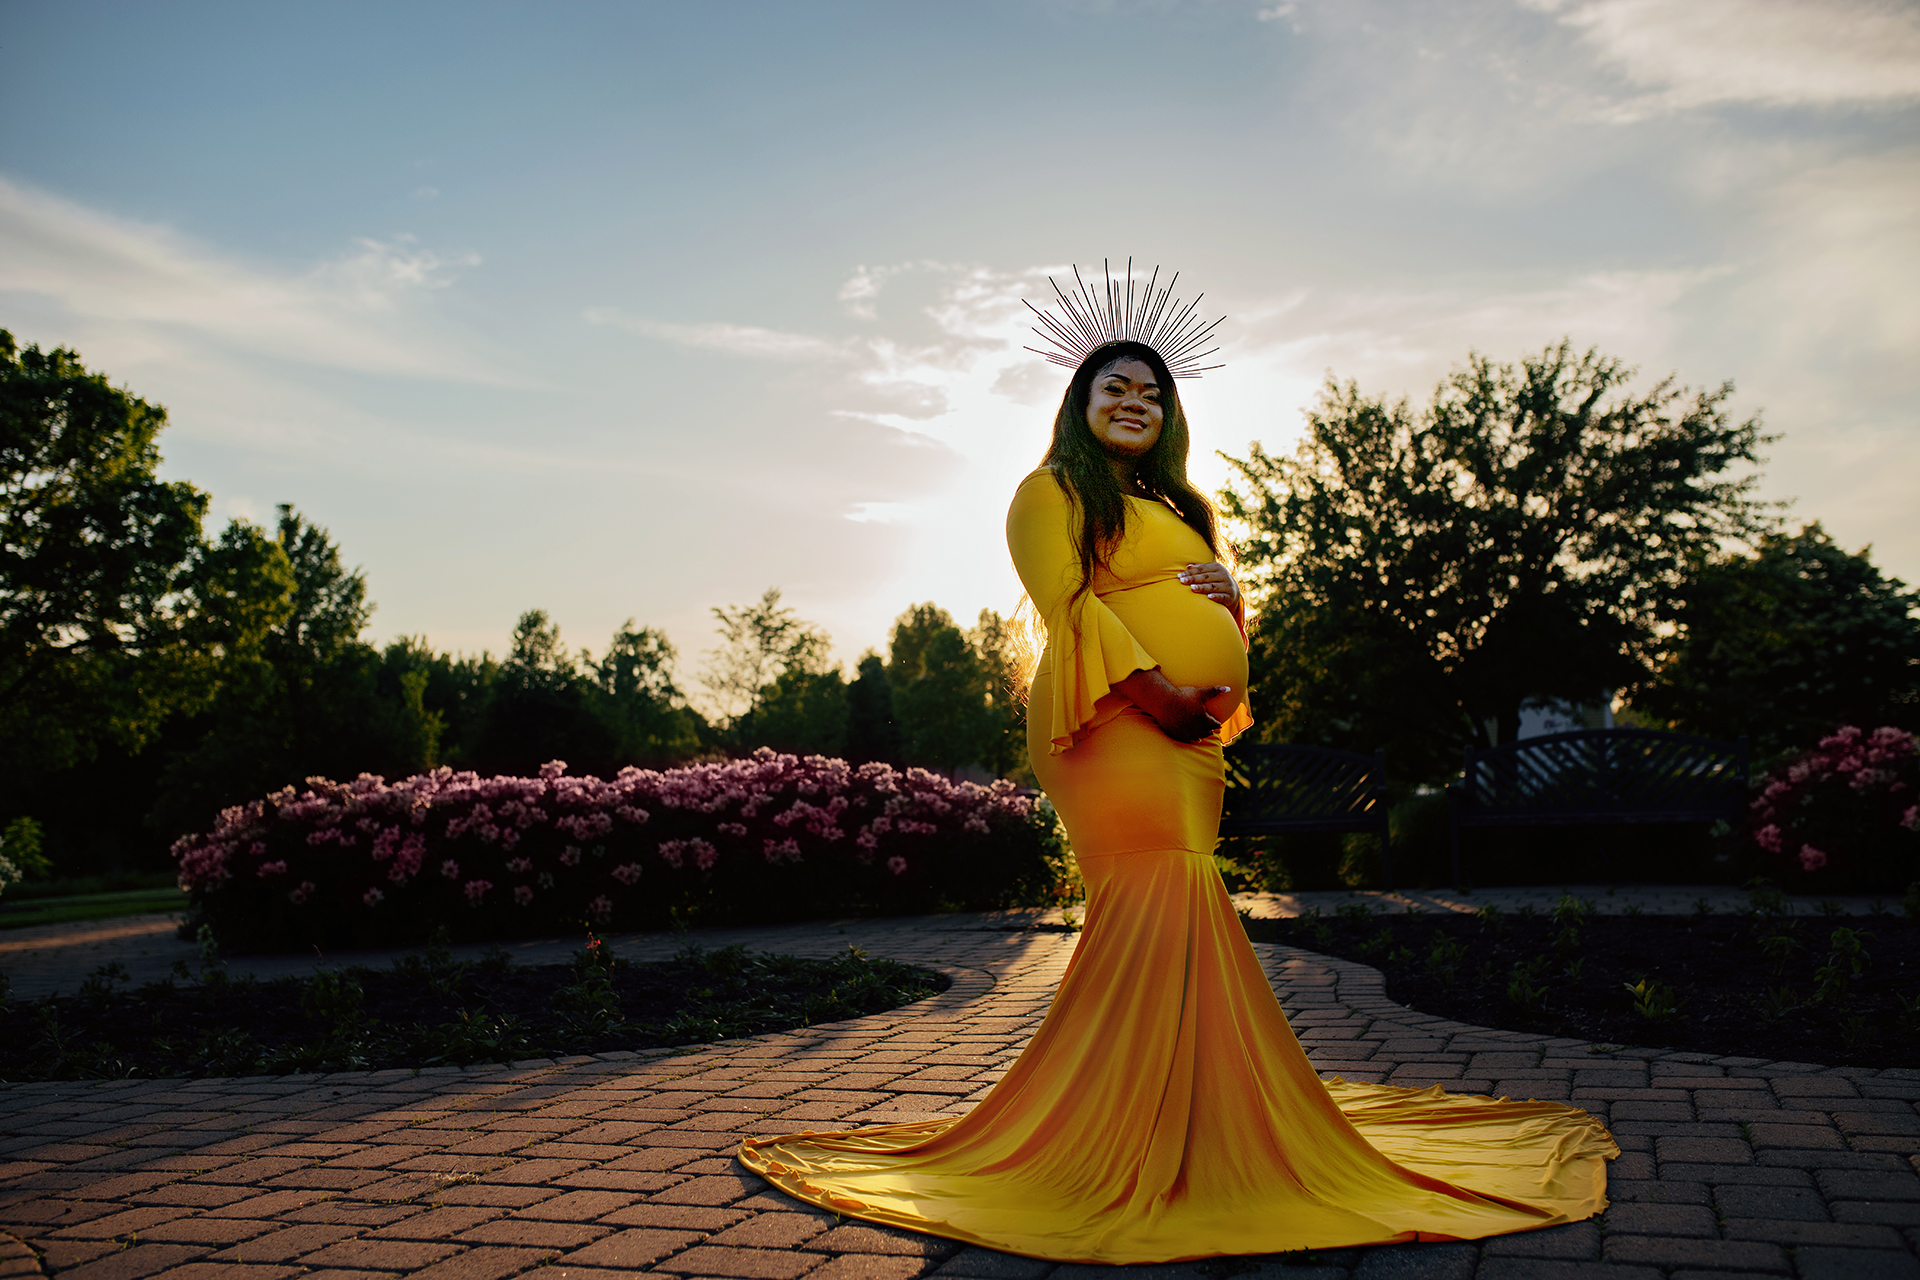 sunflower gold chicaboo athena gown with sunburst crown at Longfellow Gardens in Minneapolis MN